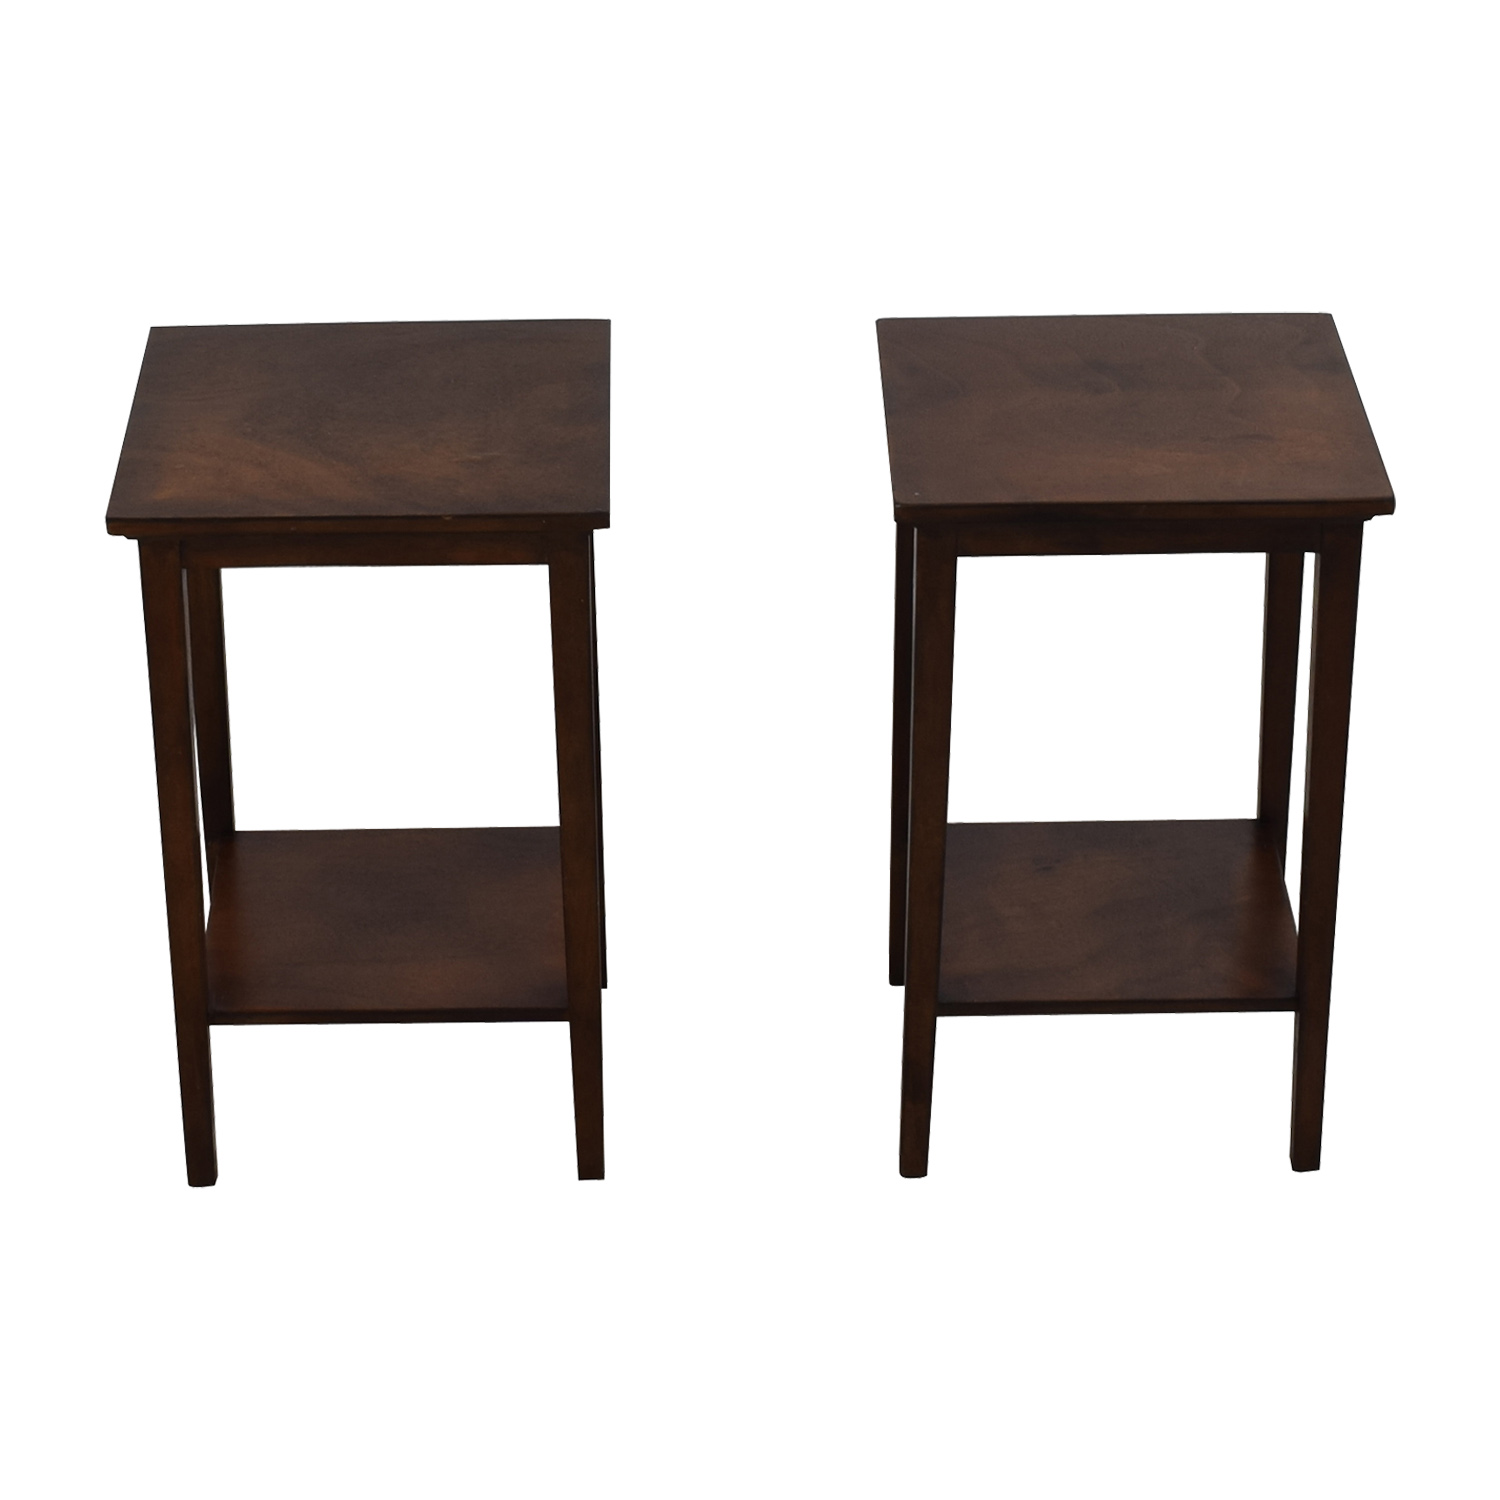 shop Wood Nightstands with Lower Shelf  Tables